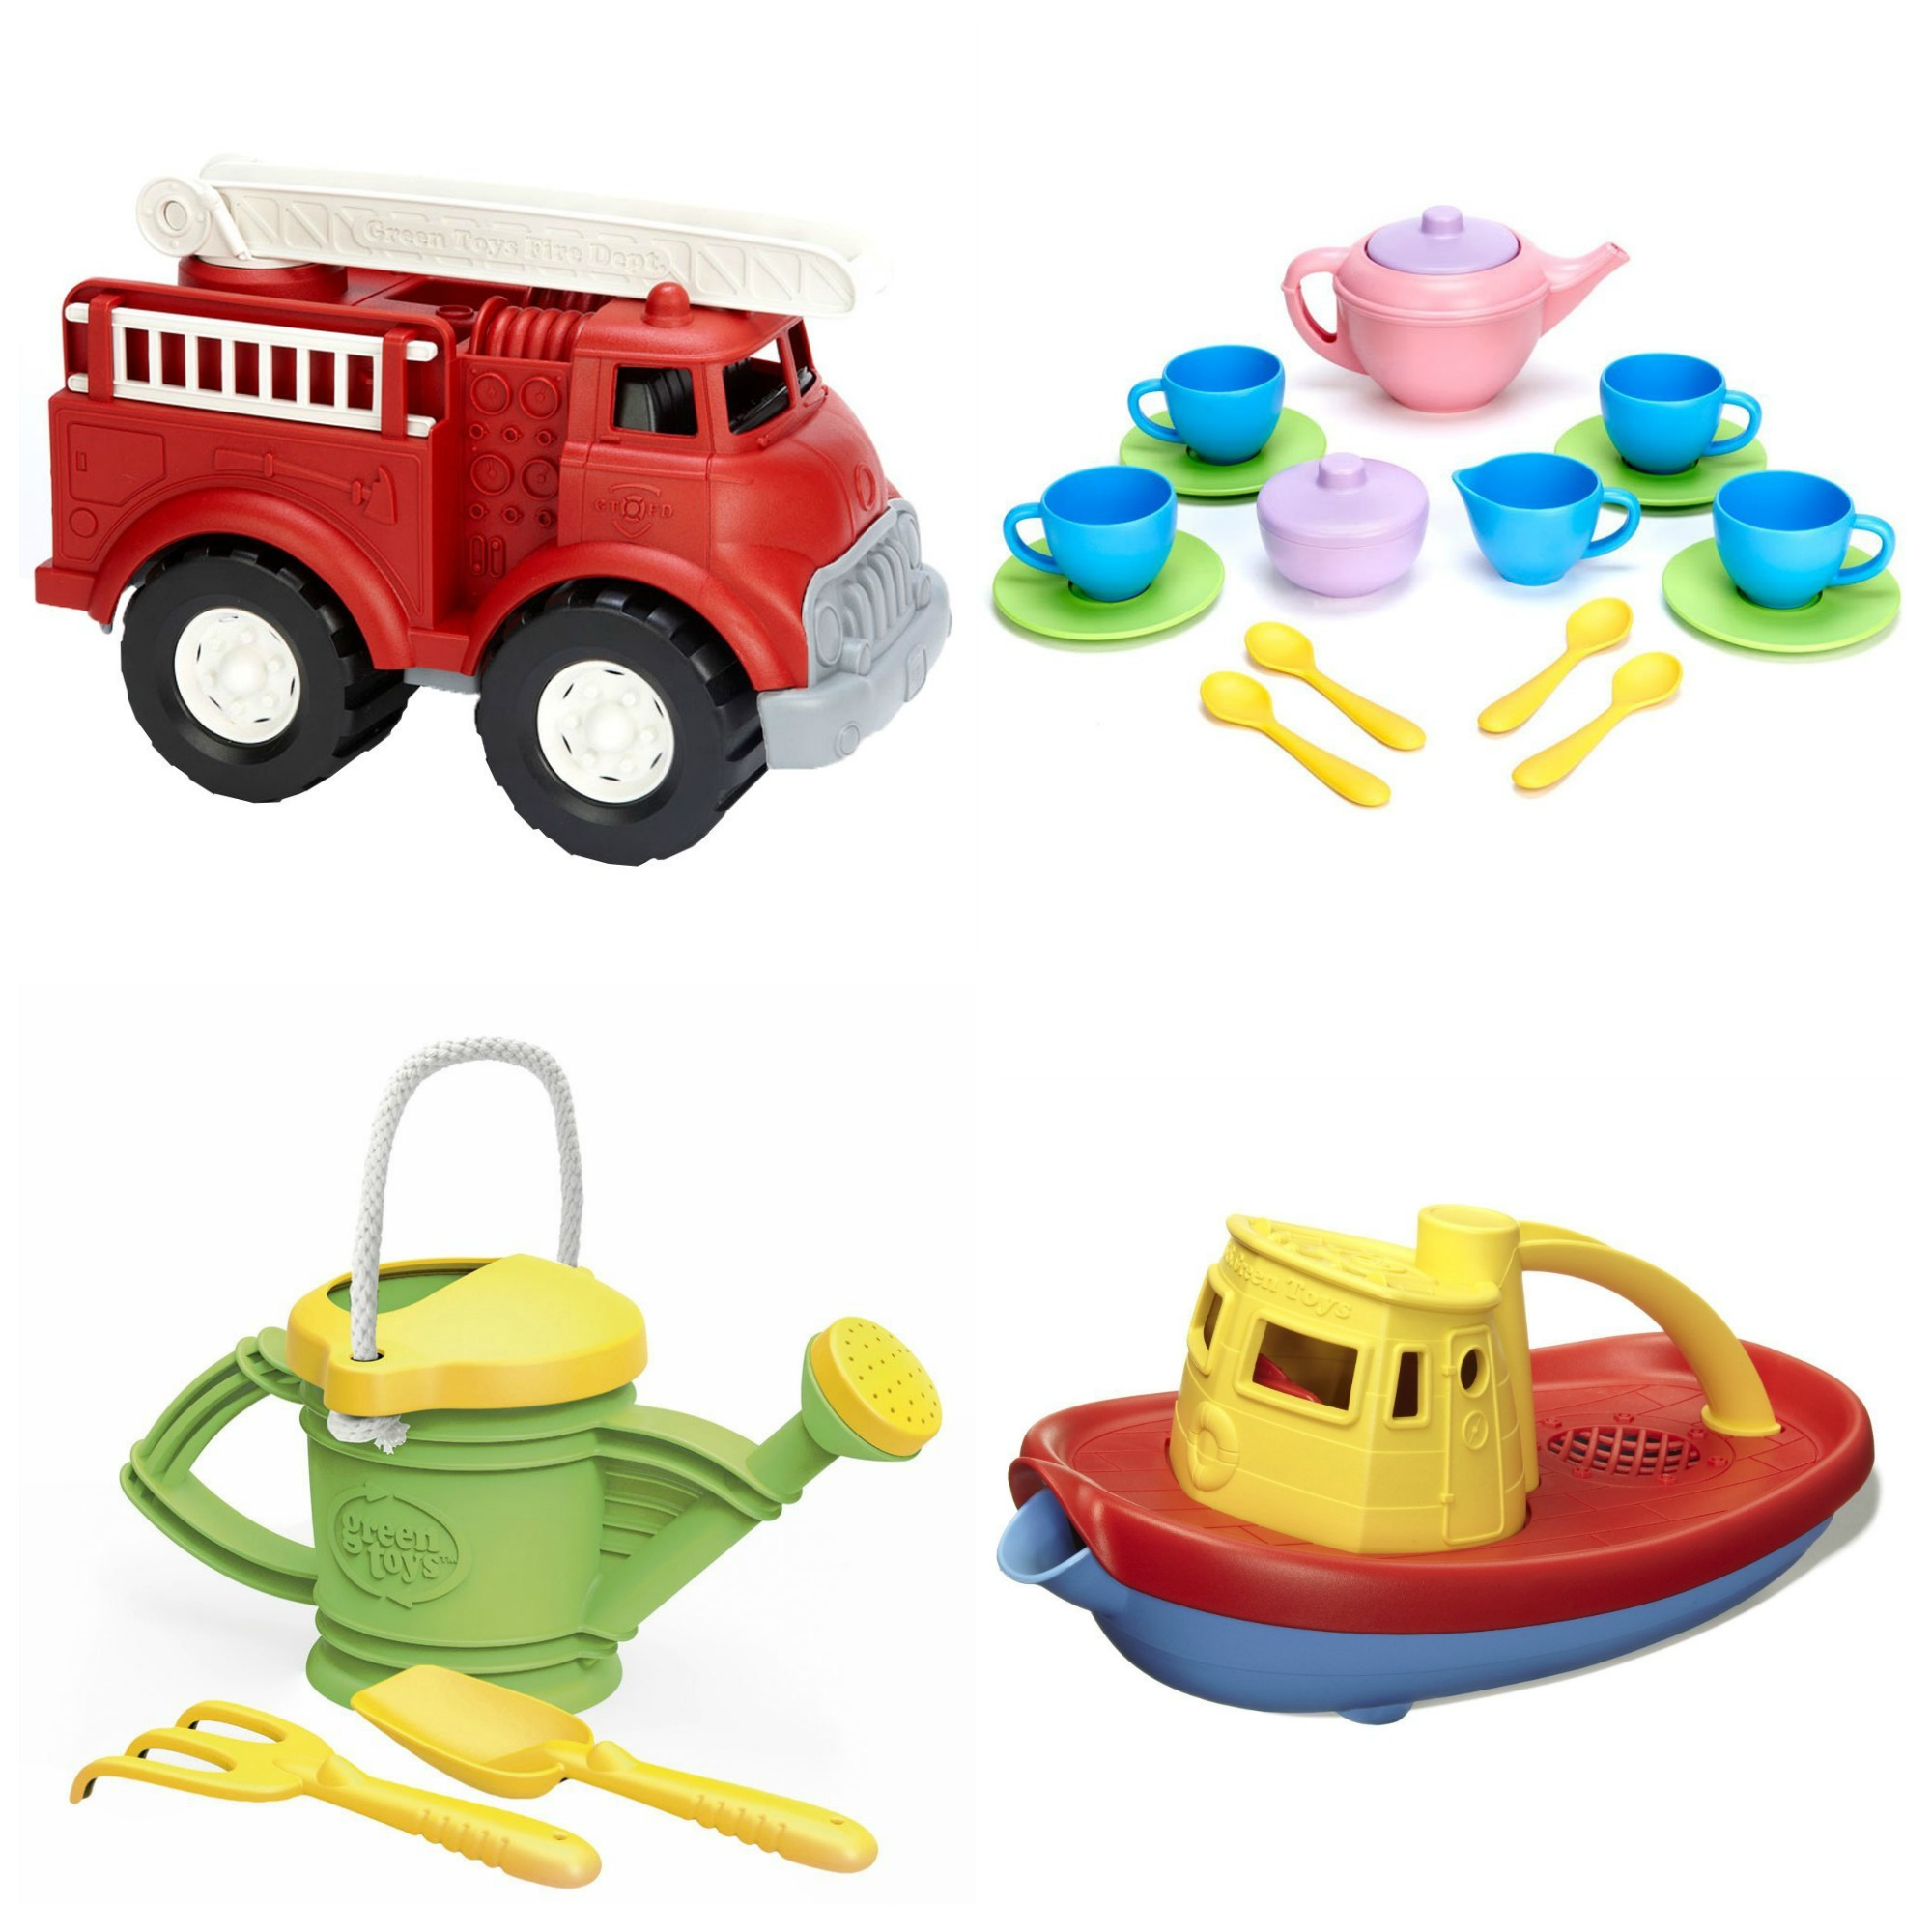 Green Toys 50% Off Amazon Deal of the Day